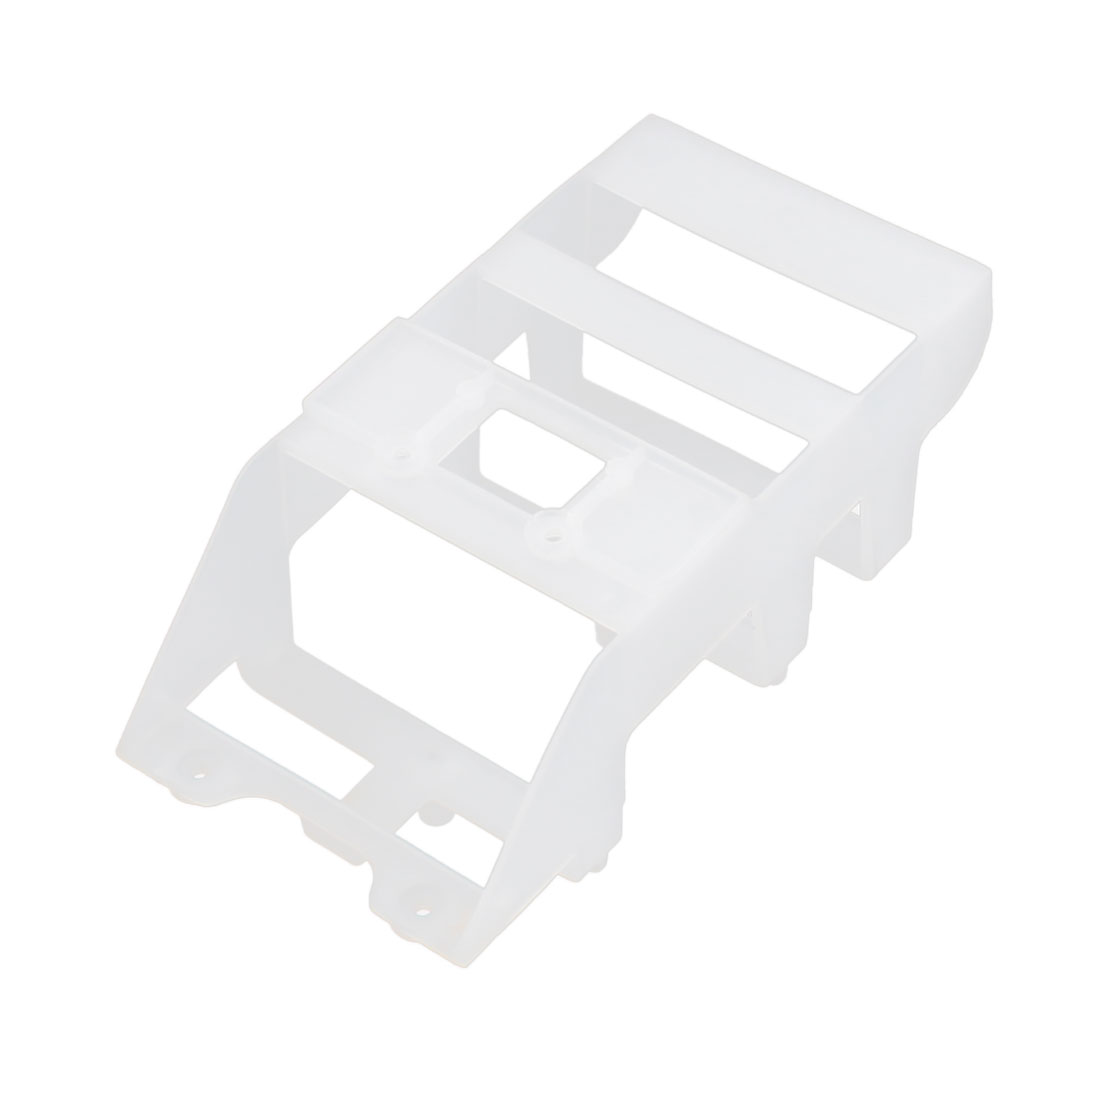 RC Radio Control Helicopter White Plastic Battery Case Barcket Holder Spare Part for Syma S031G